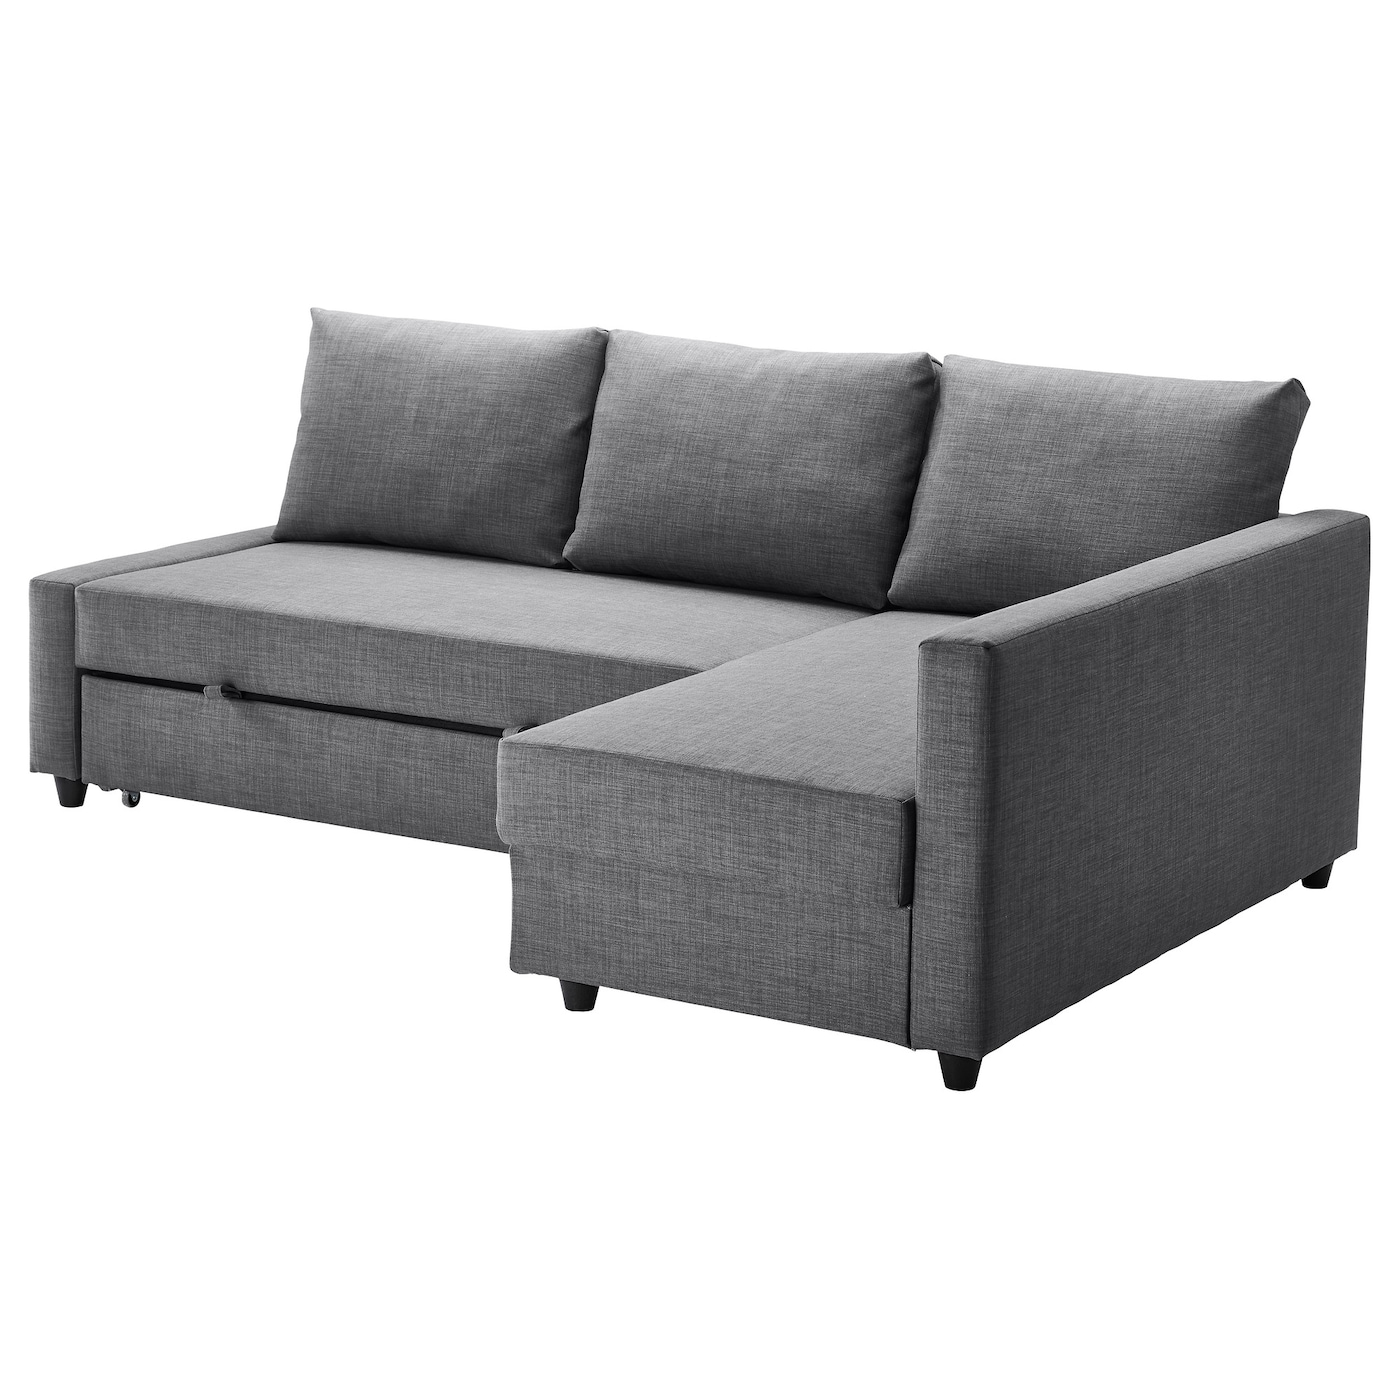 FRIHETEN Corner sofa-bed with storage - Skiftebo dark gray